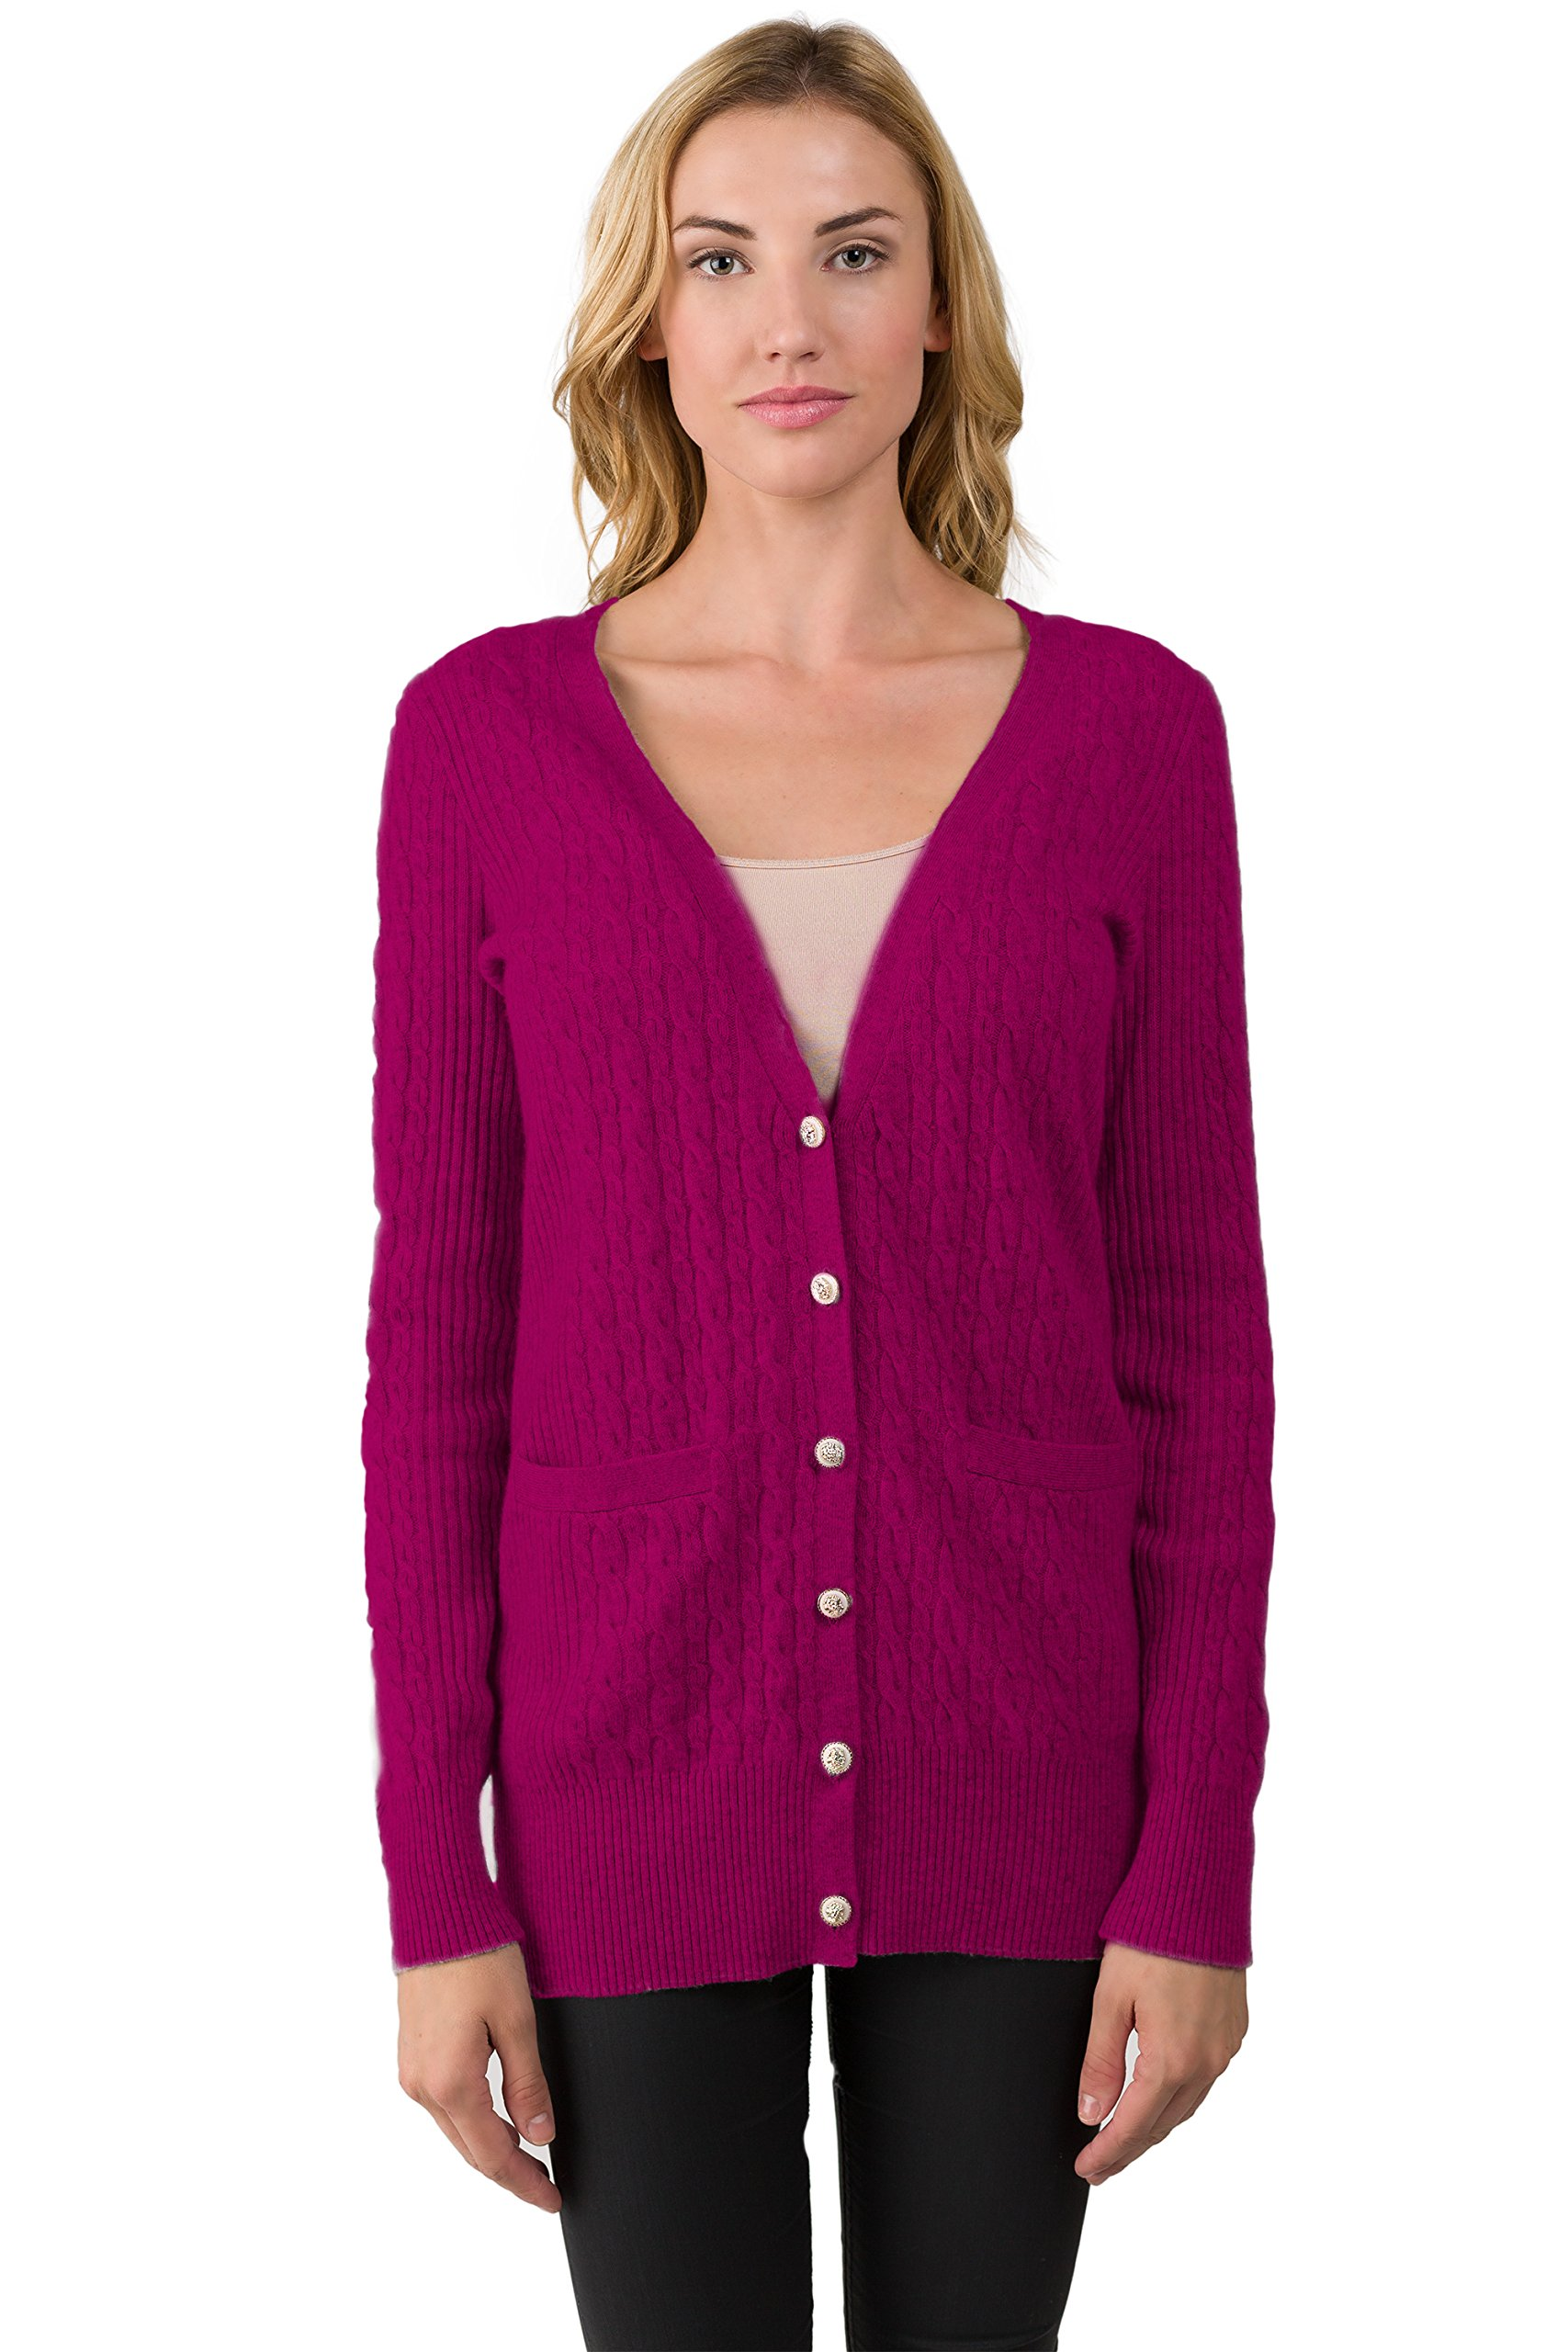 J CASHMERE Women's 100% Cashmere Cable-knit V-neck Long Button Cardigan Sweater Berry Medium by JENNIE LIU (Image #1)